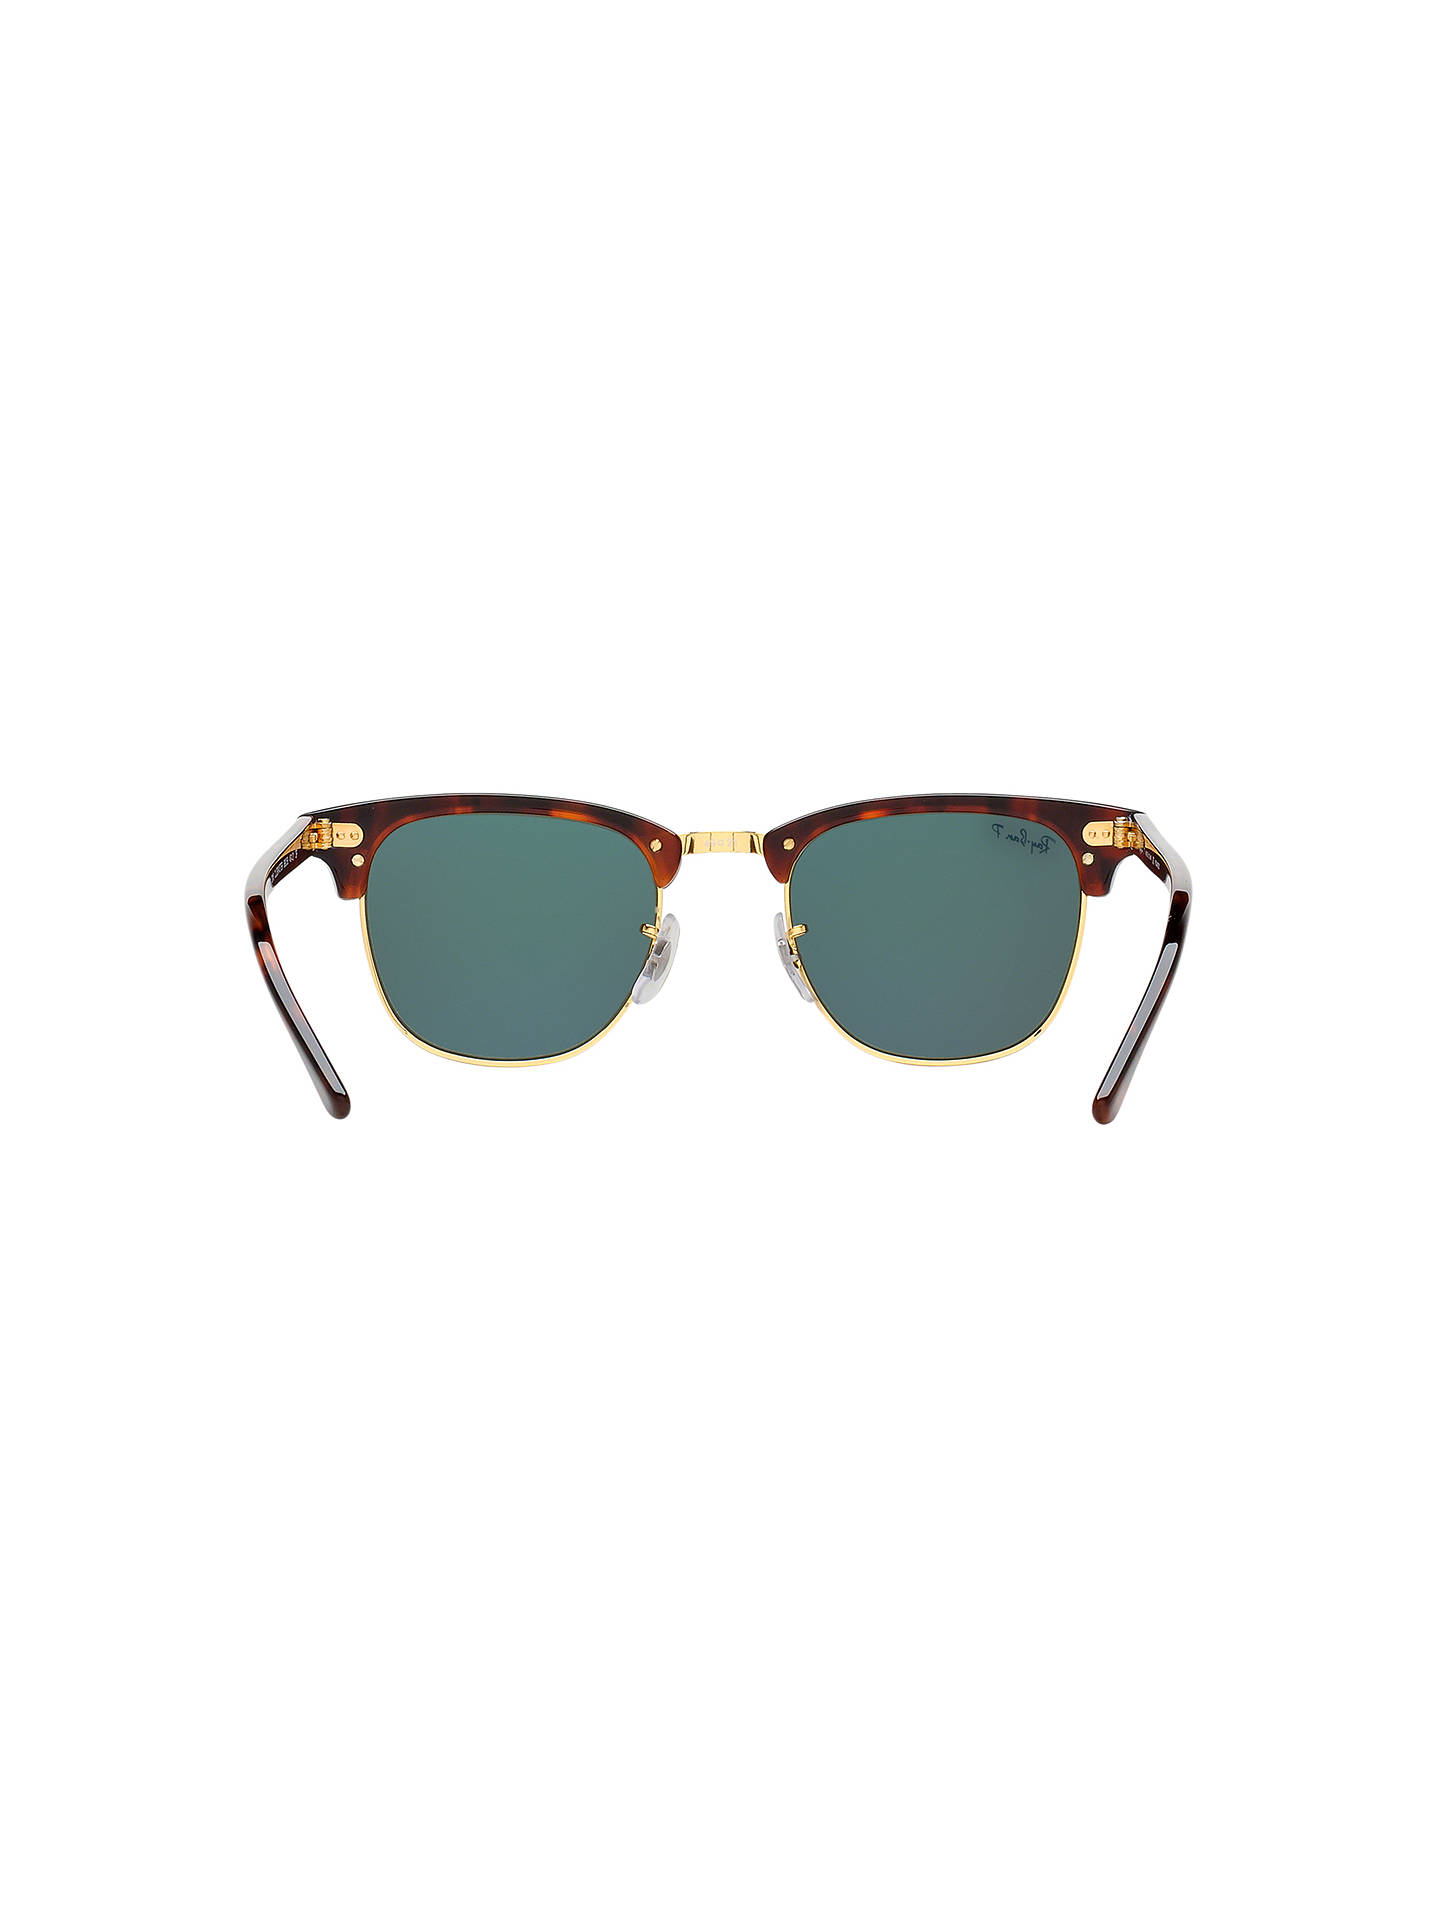 57bd755486a4 ... Buy Ray-Ban RB3016 Men's Polarised Clubmaster Sunglasses, Tortoise/Dark  Green Online at ...